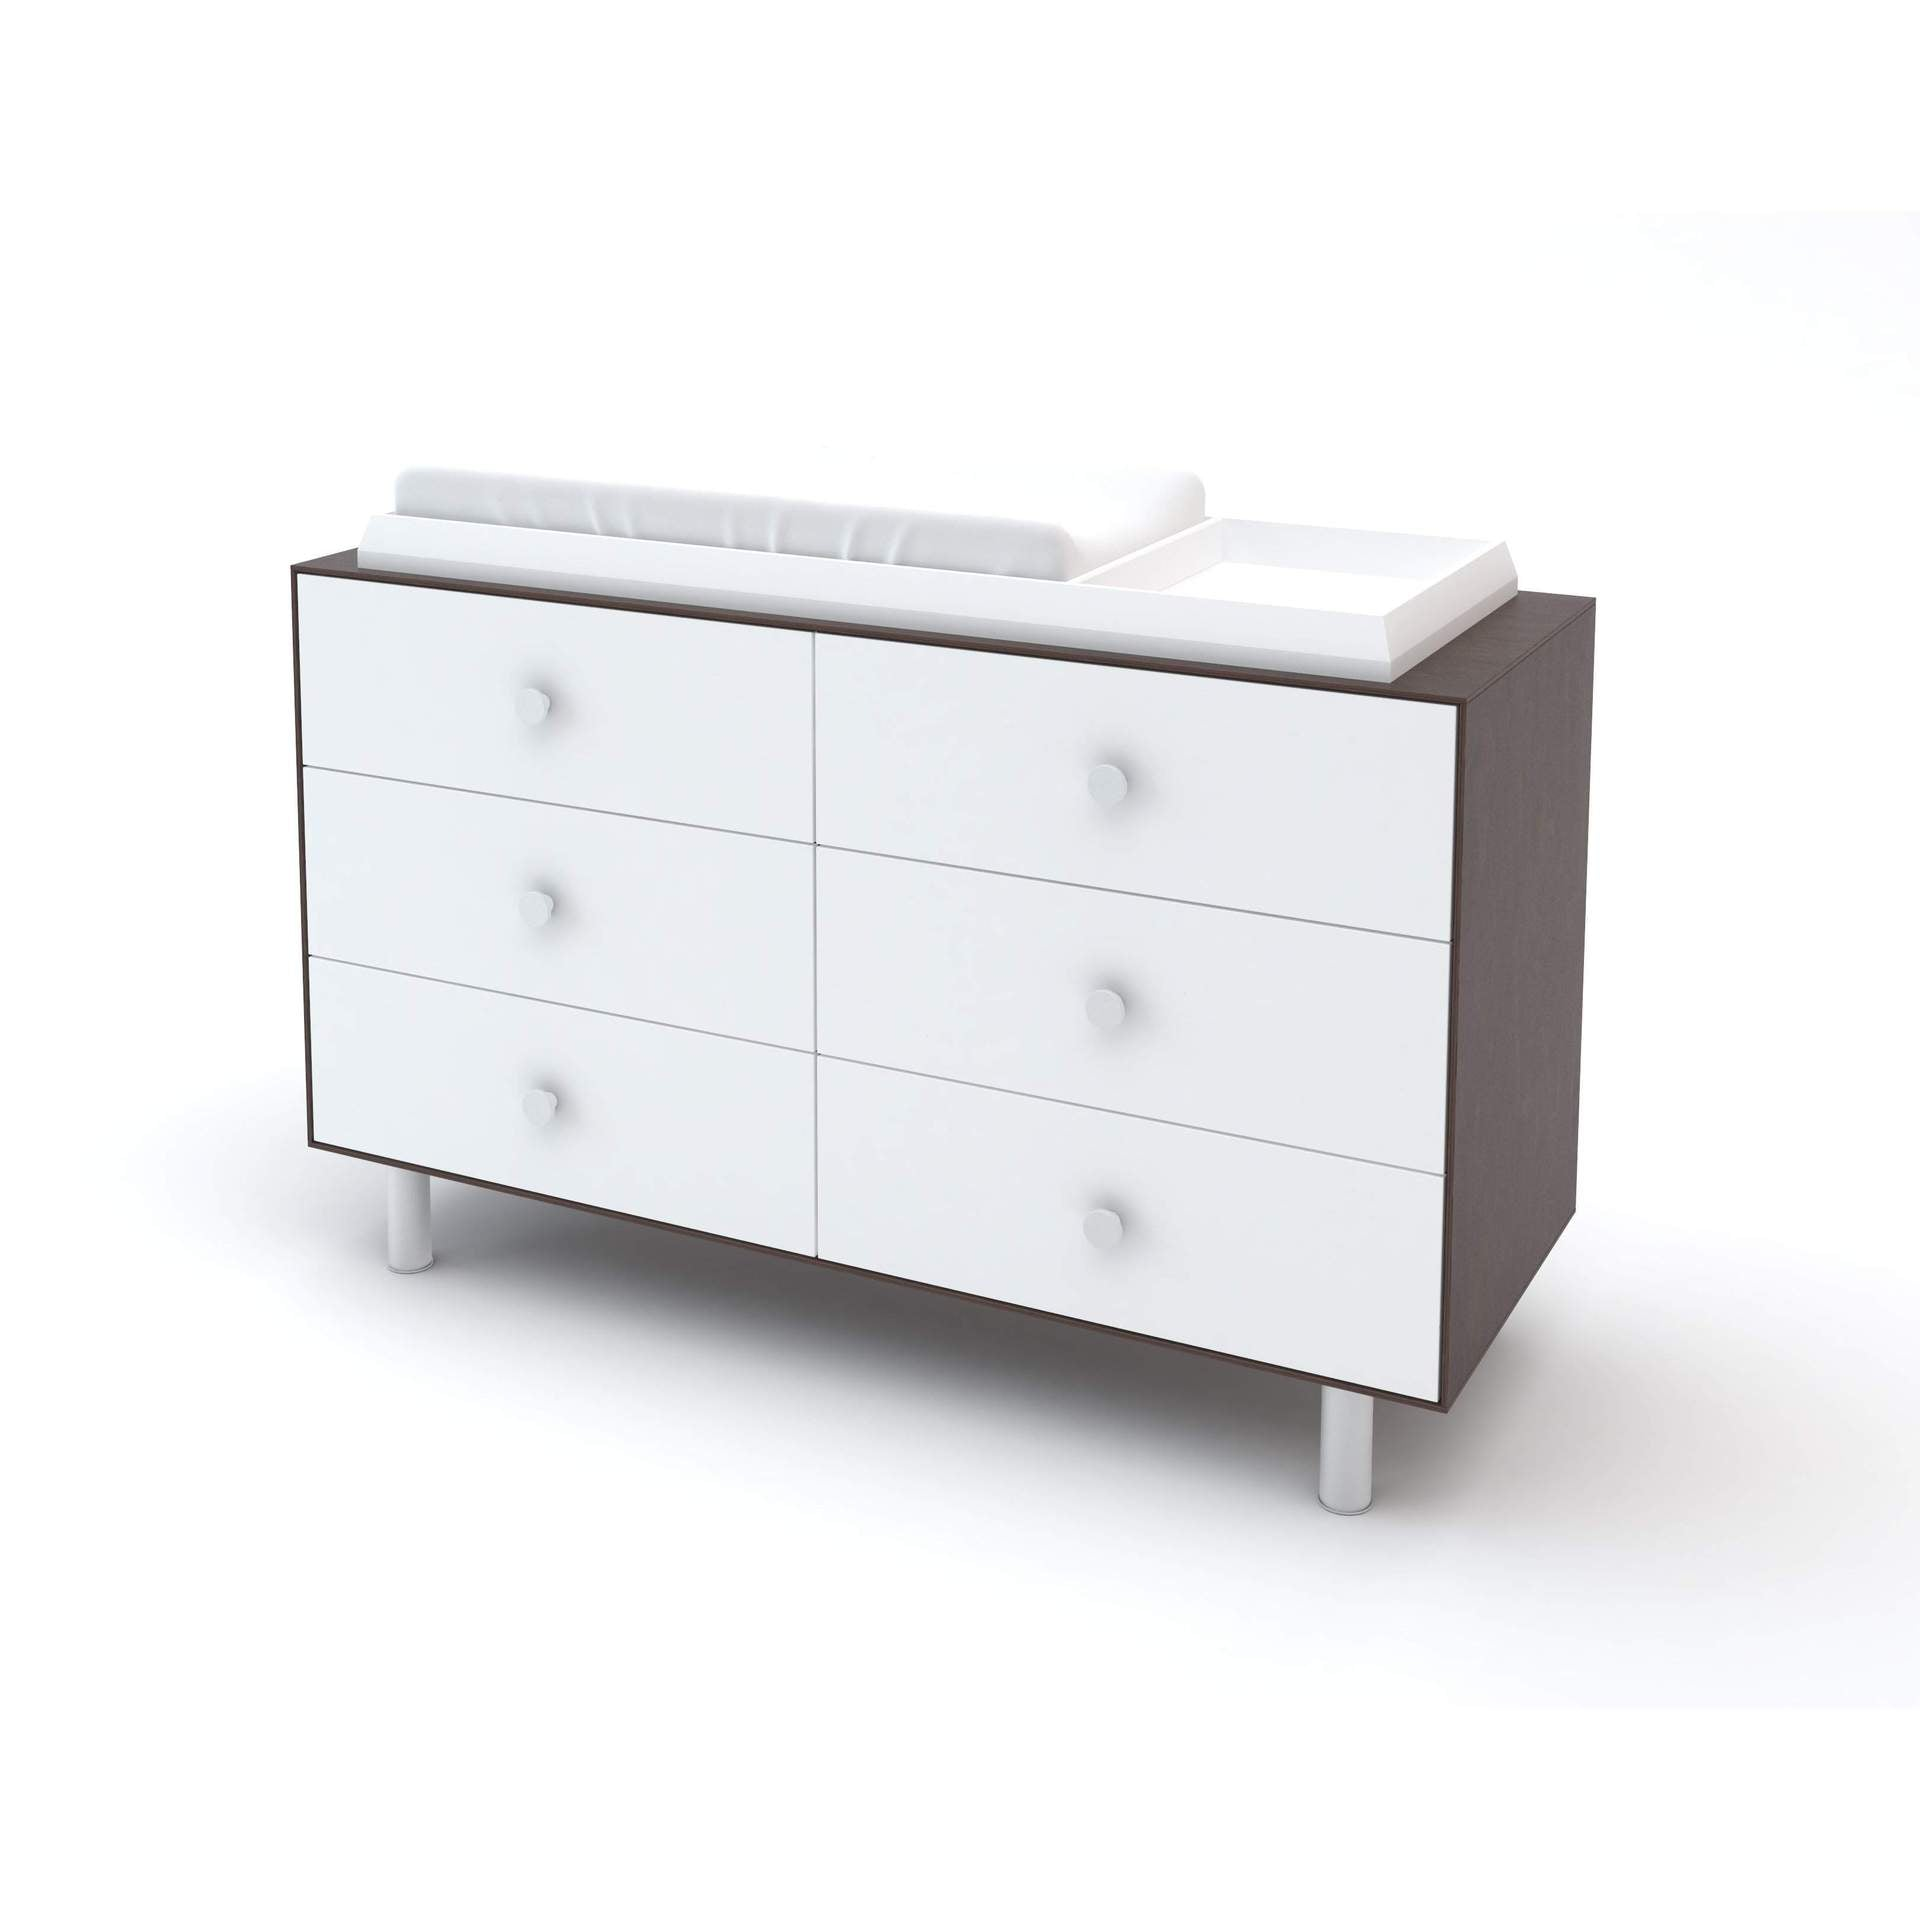 Oeuf Oeuf Merlin 6 Drawer Dresser - Classic Base - fawn&forest